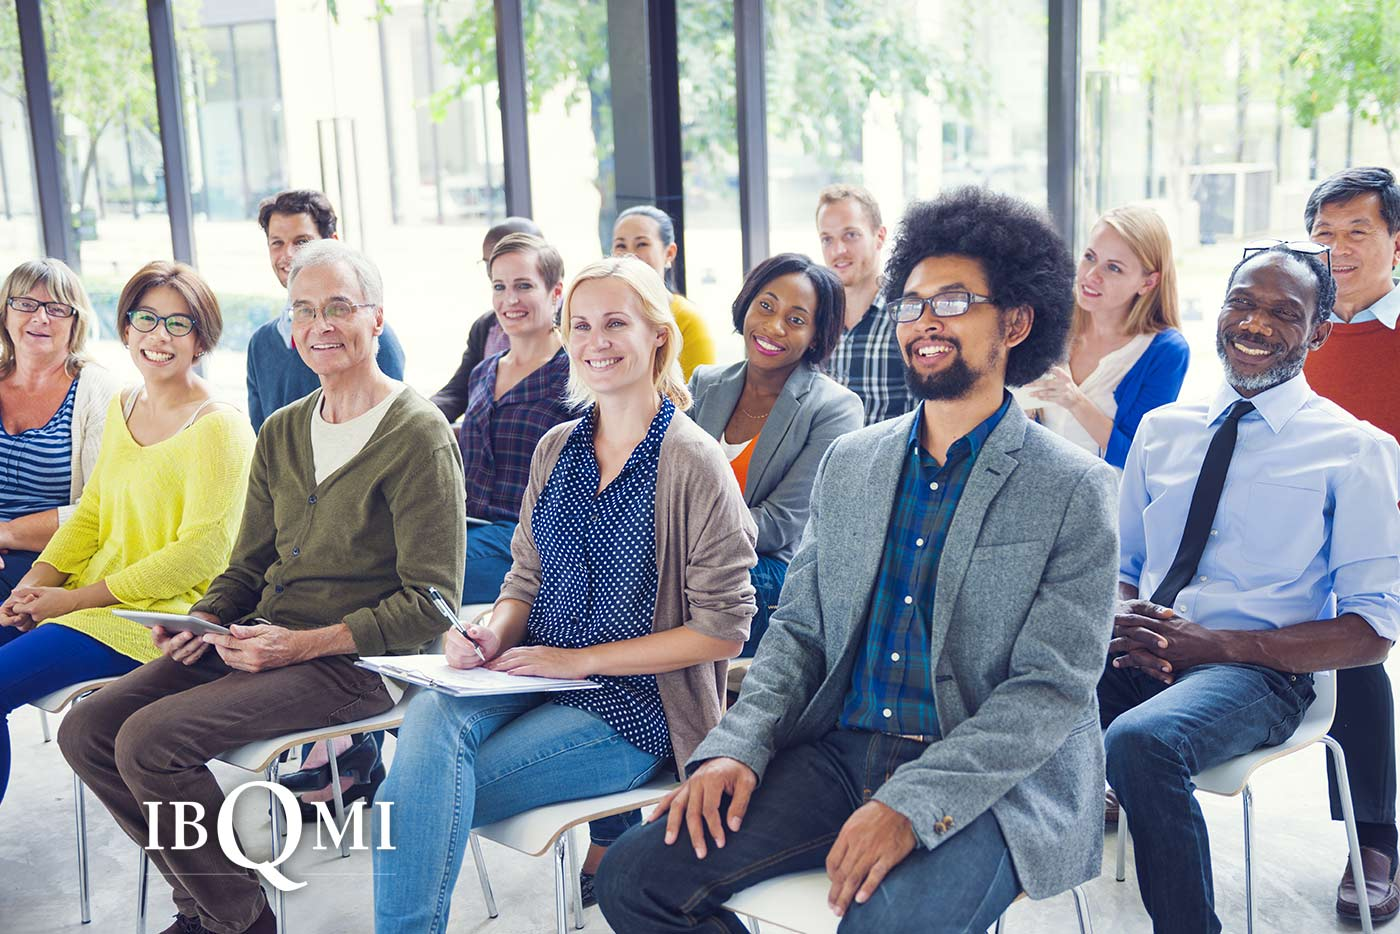 6 reasons why the ibqmi tqm trainer is important